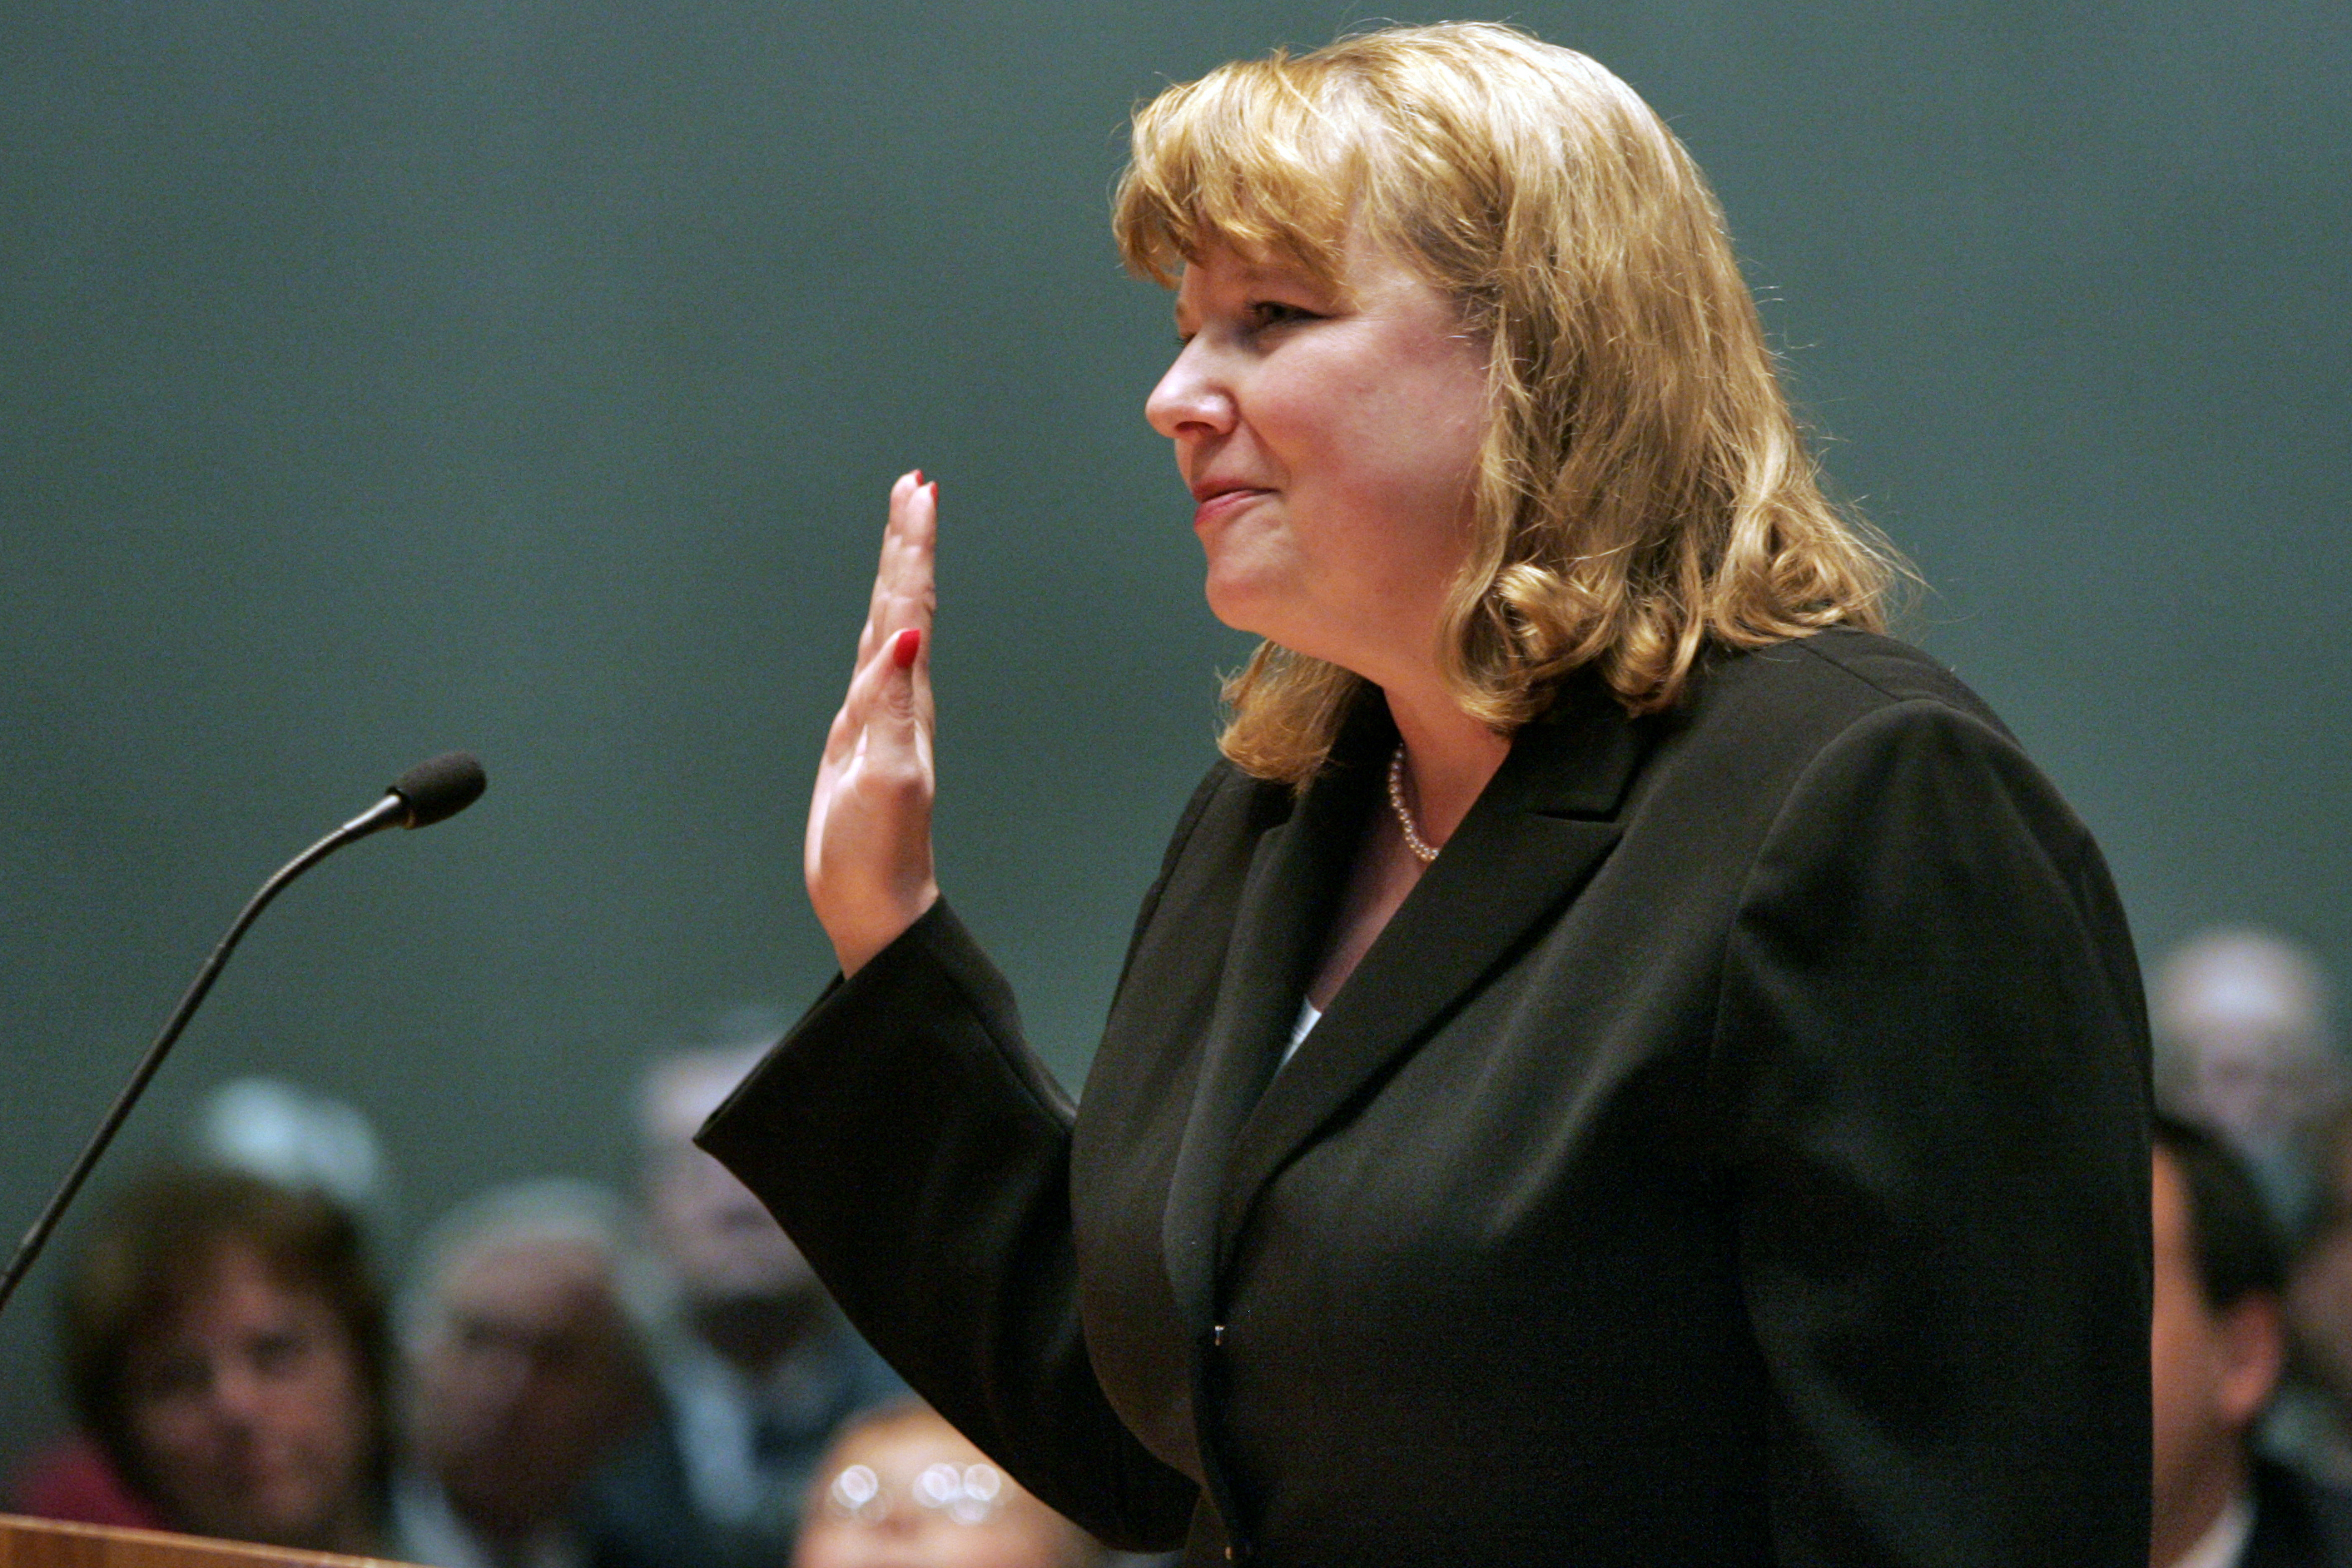 Photo: Allison Eidis sworn in as chief justice of the Colorado Supreme Court in Denver, Monday, March 13, 2006